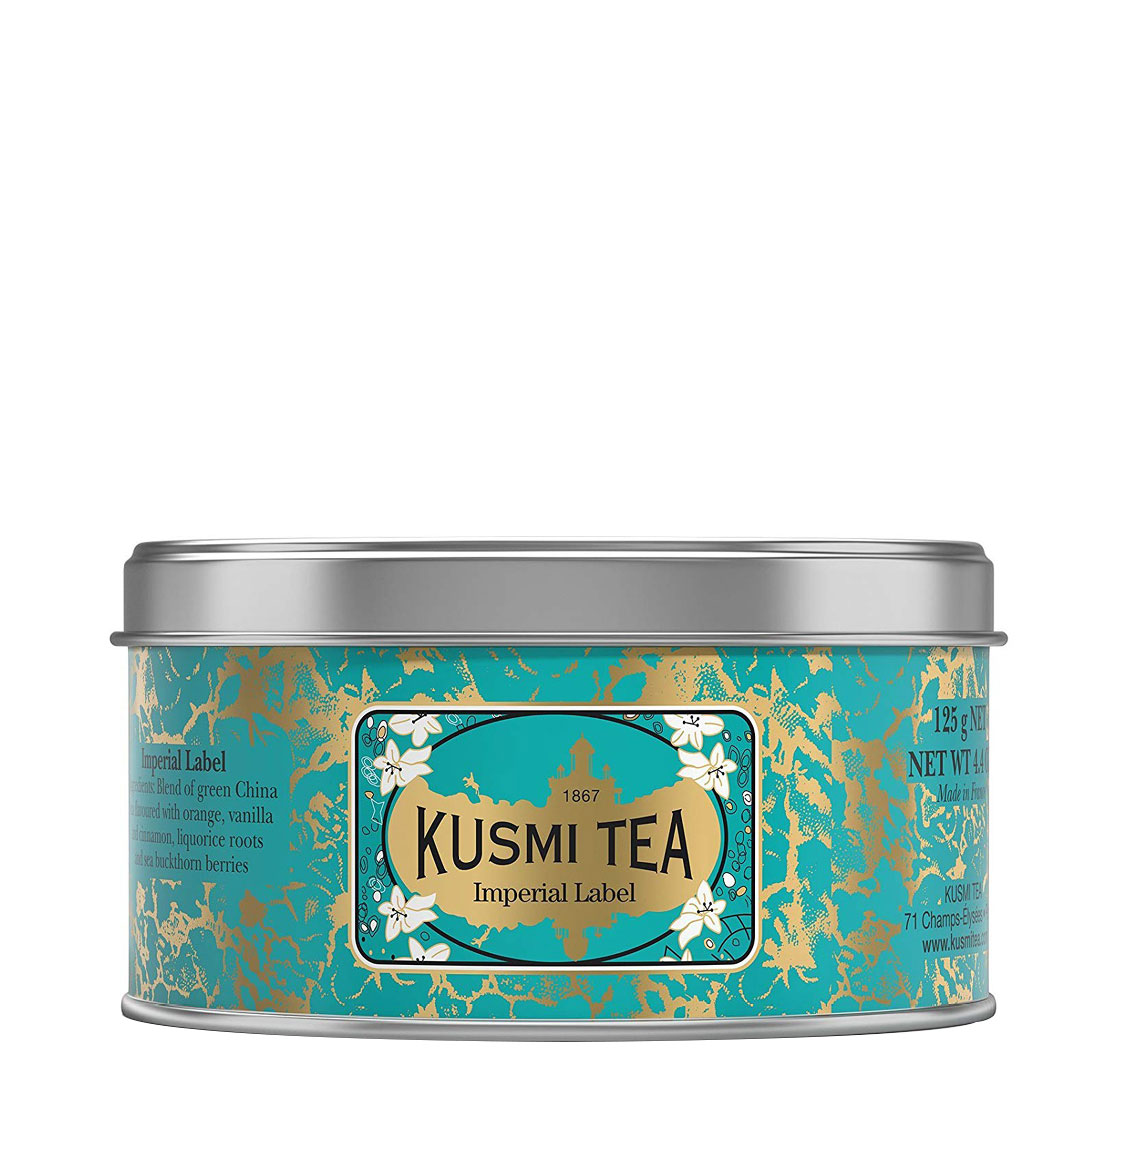 Kusmi Tea Imperial Label 125g